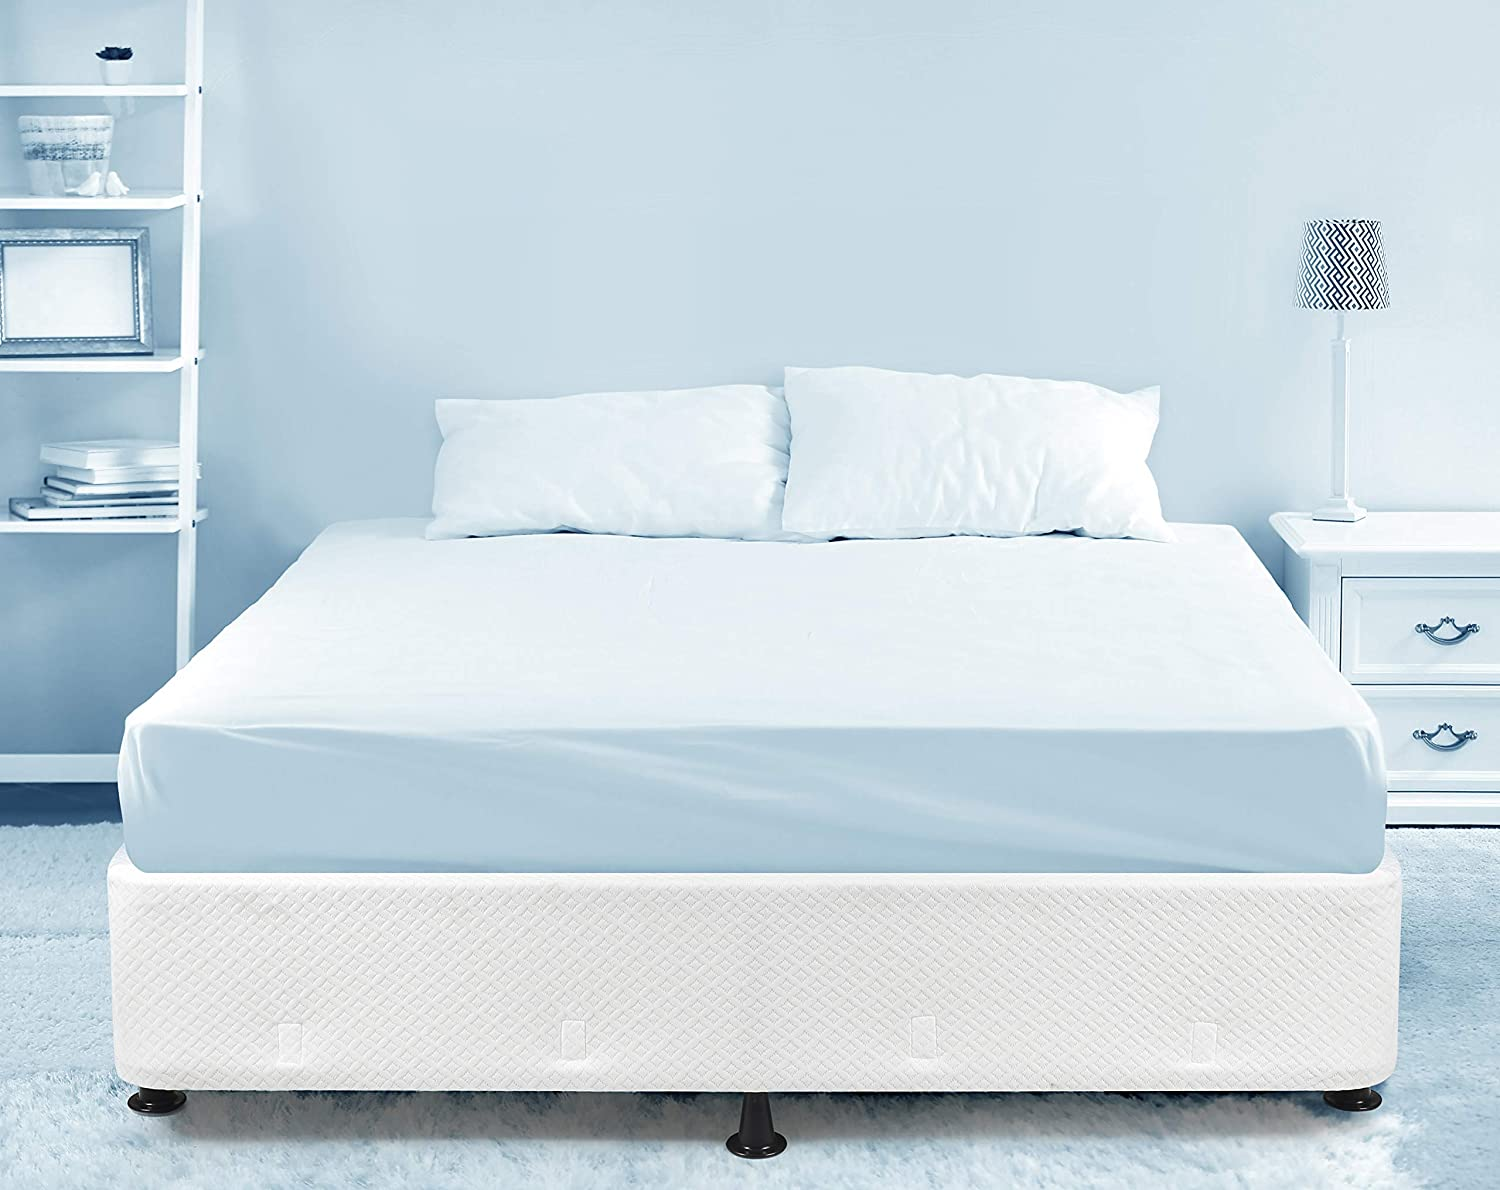 Milliard Box Spring Frame Twin Size High Profile Mattress Foundation Metal Structure, Can Be Used with or Without Included Legs or Directly on Bed Frame Twin